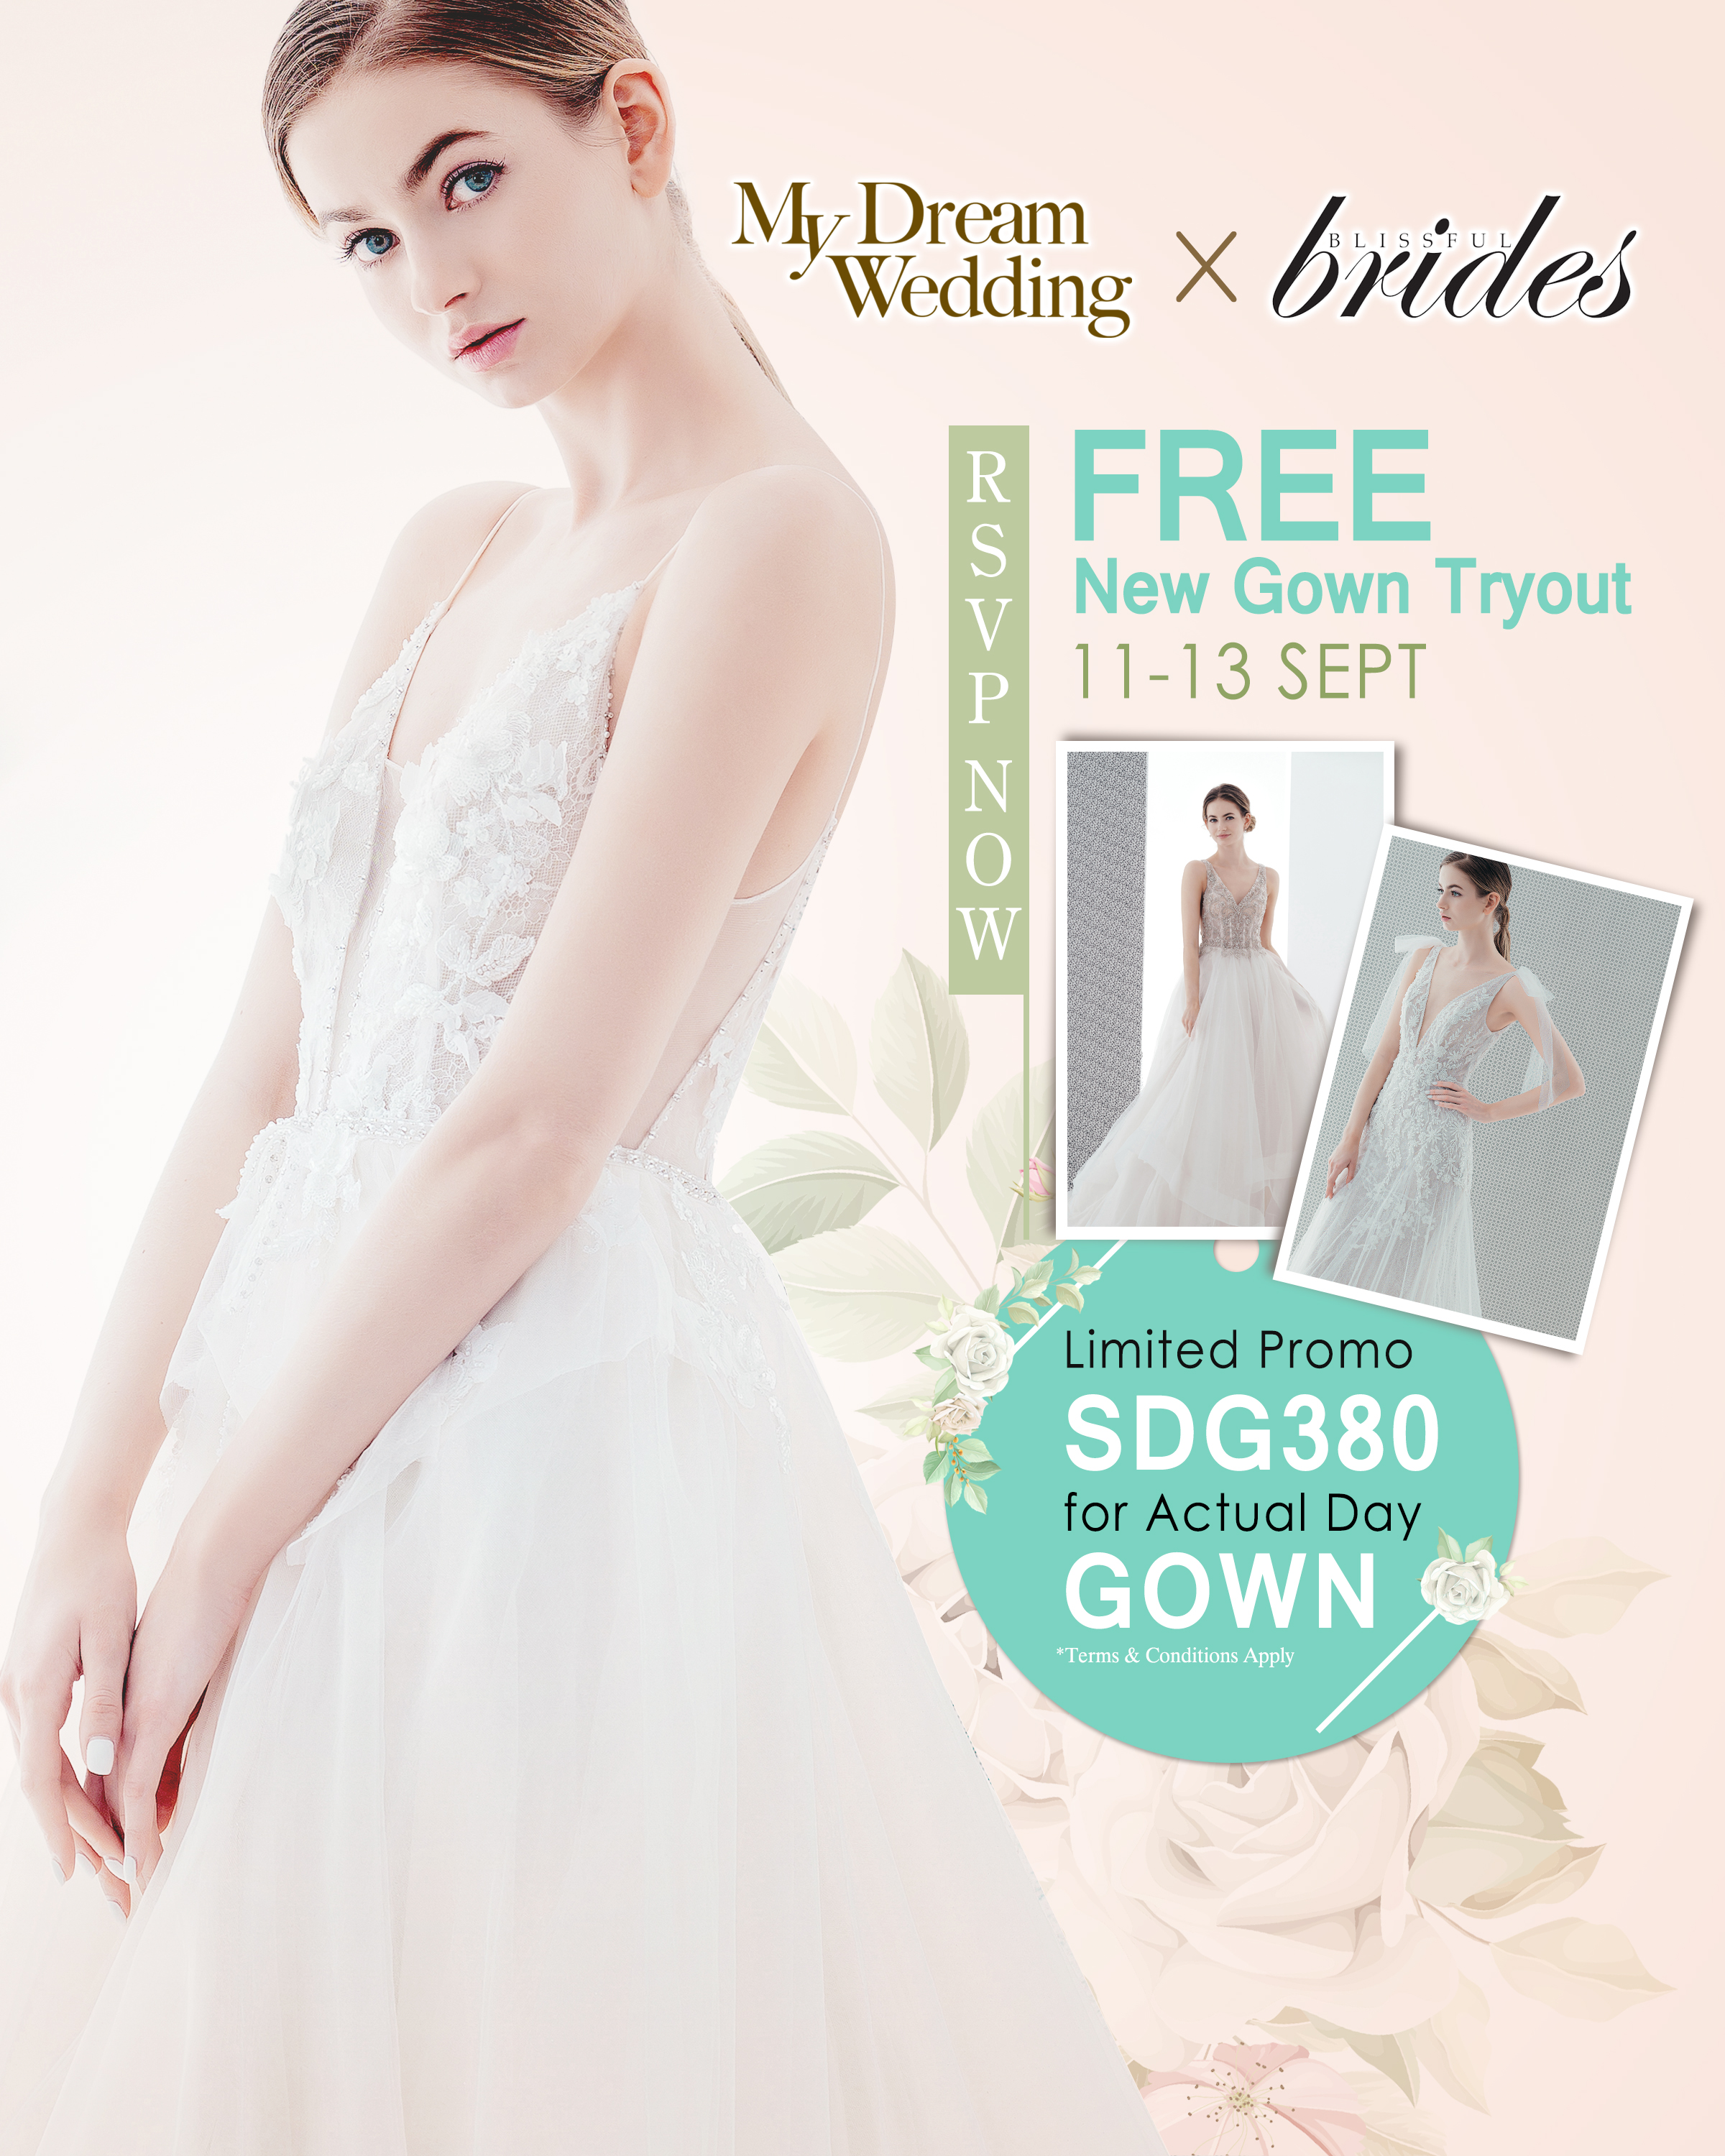 Free New Gown Tryout – 11 to 13 Sept